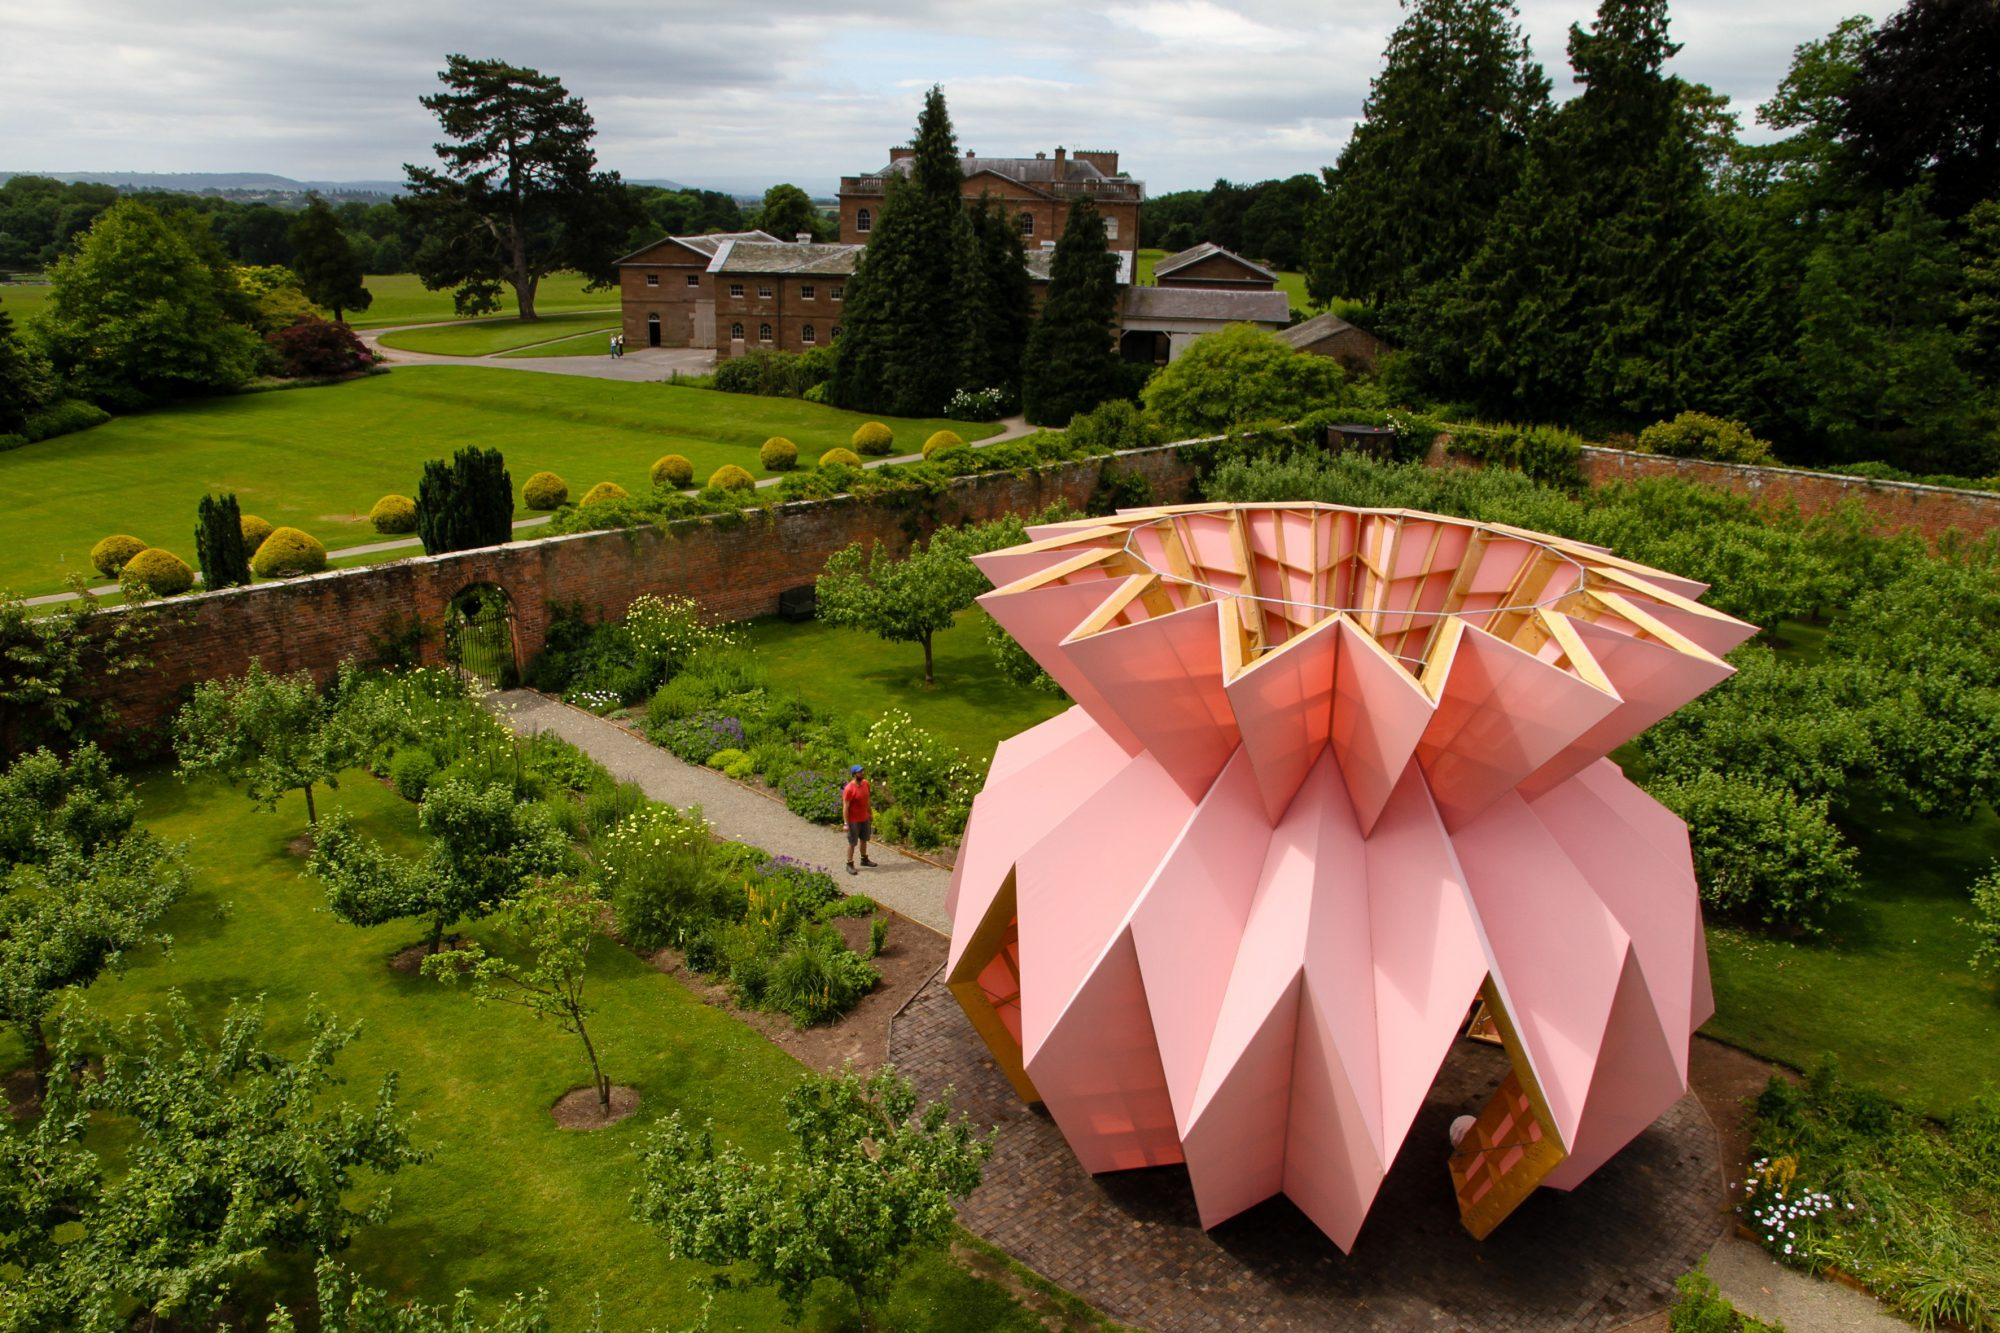 The sculpture within the walled garden.